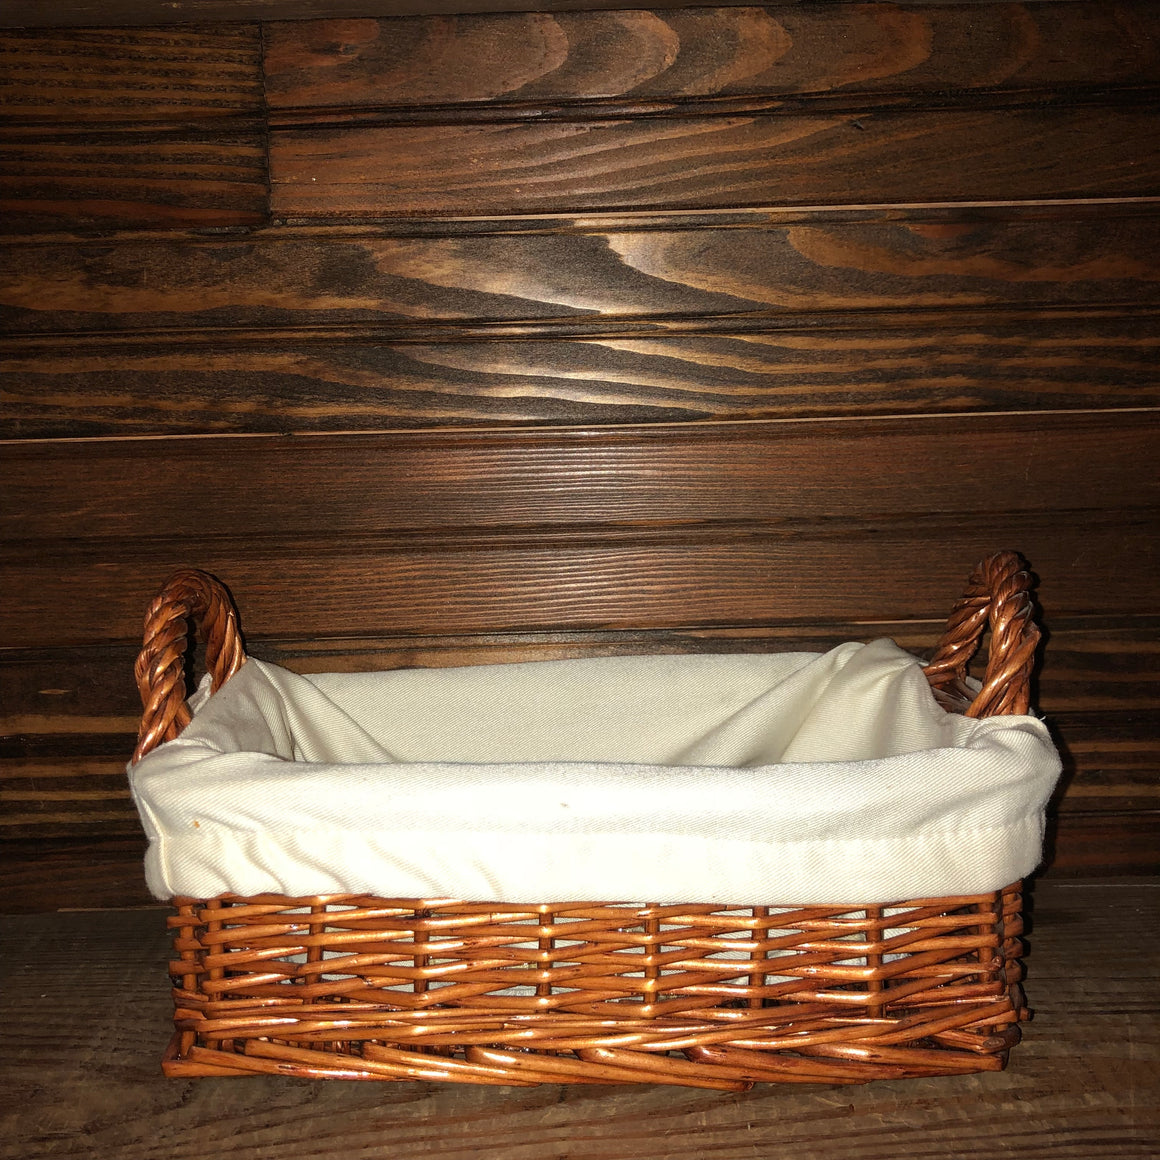 Basket- Small Lined Basket with Handles